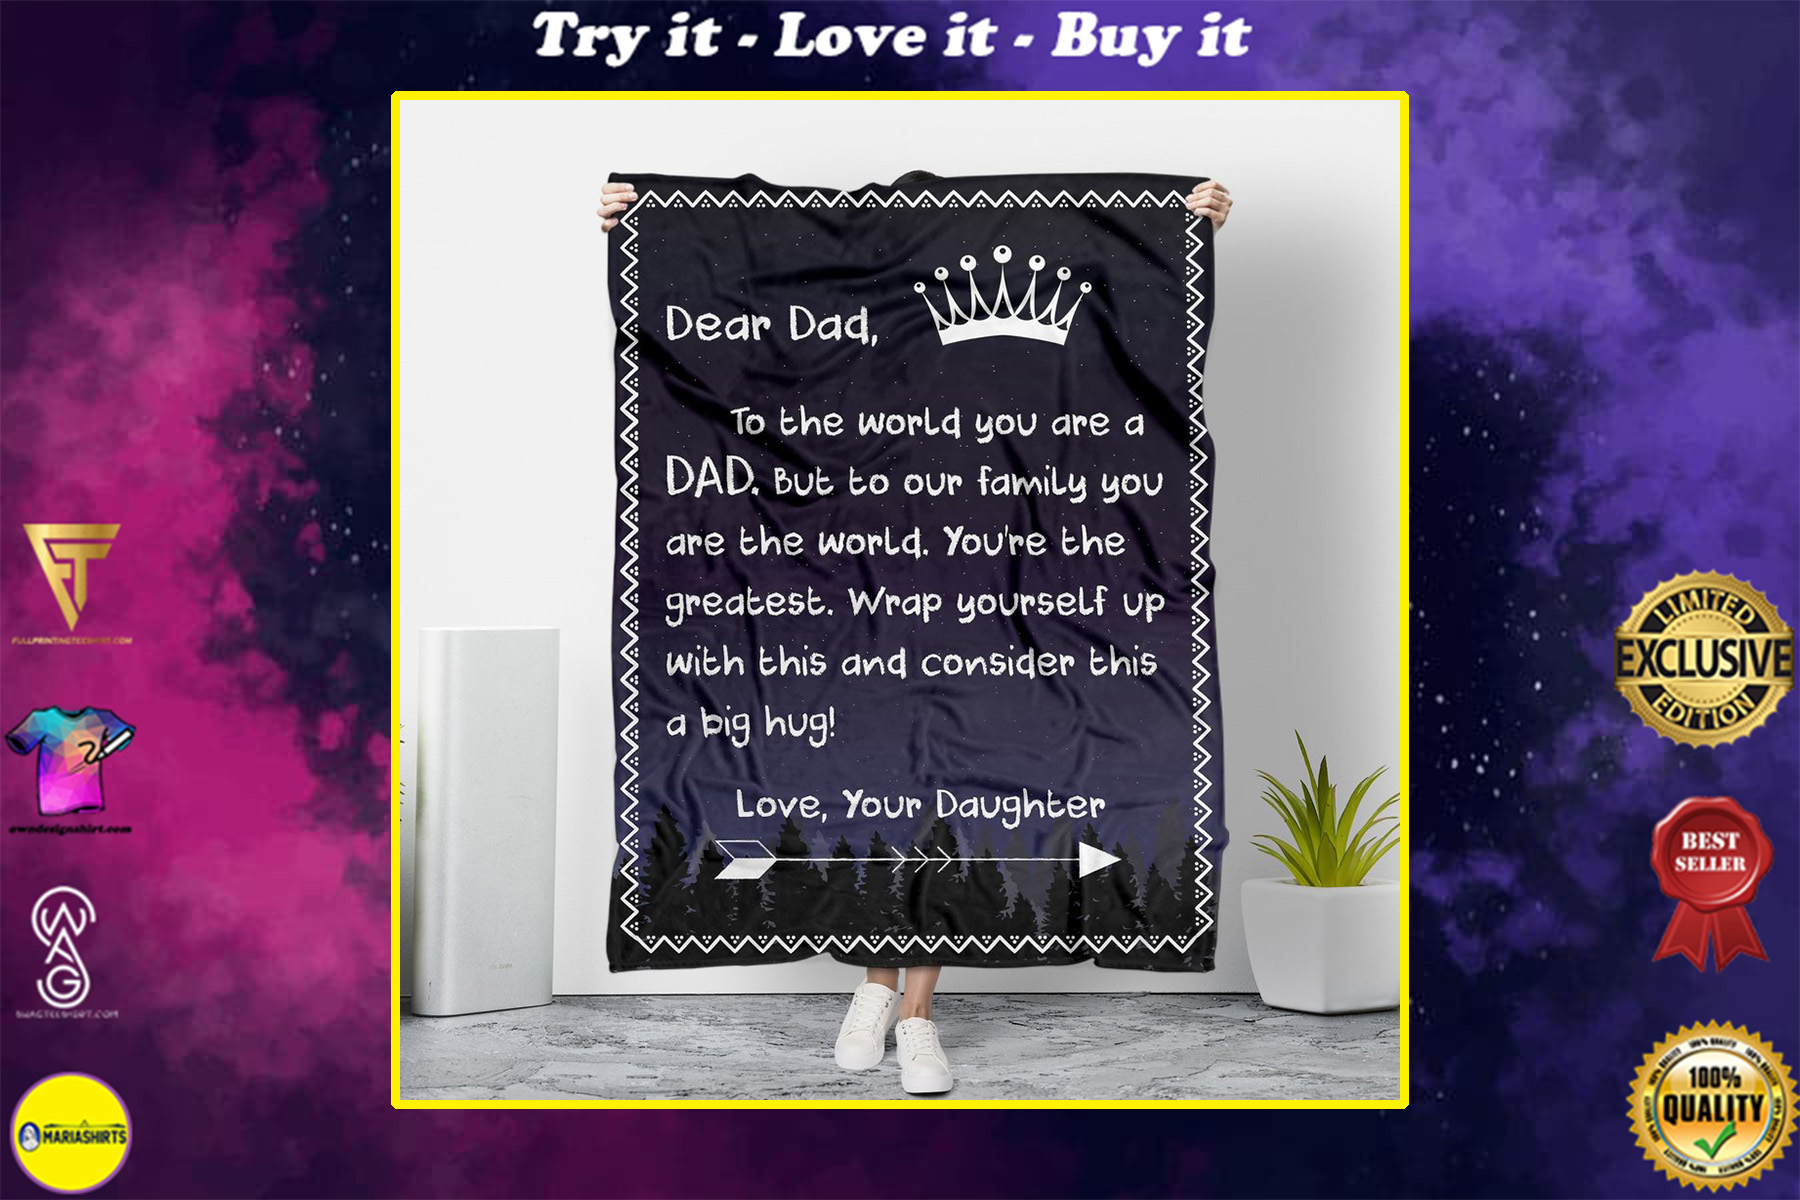 dear dad wrap yourself up with this love your daughter blanket